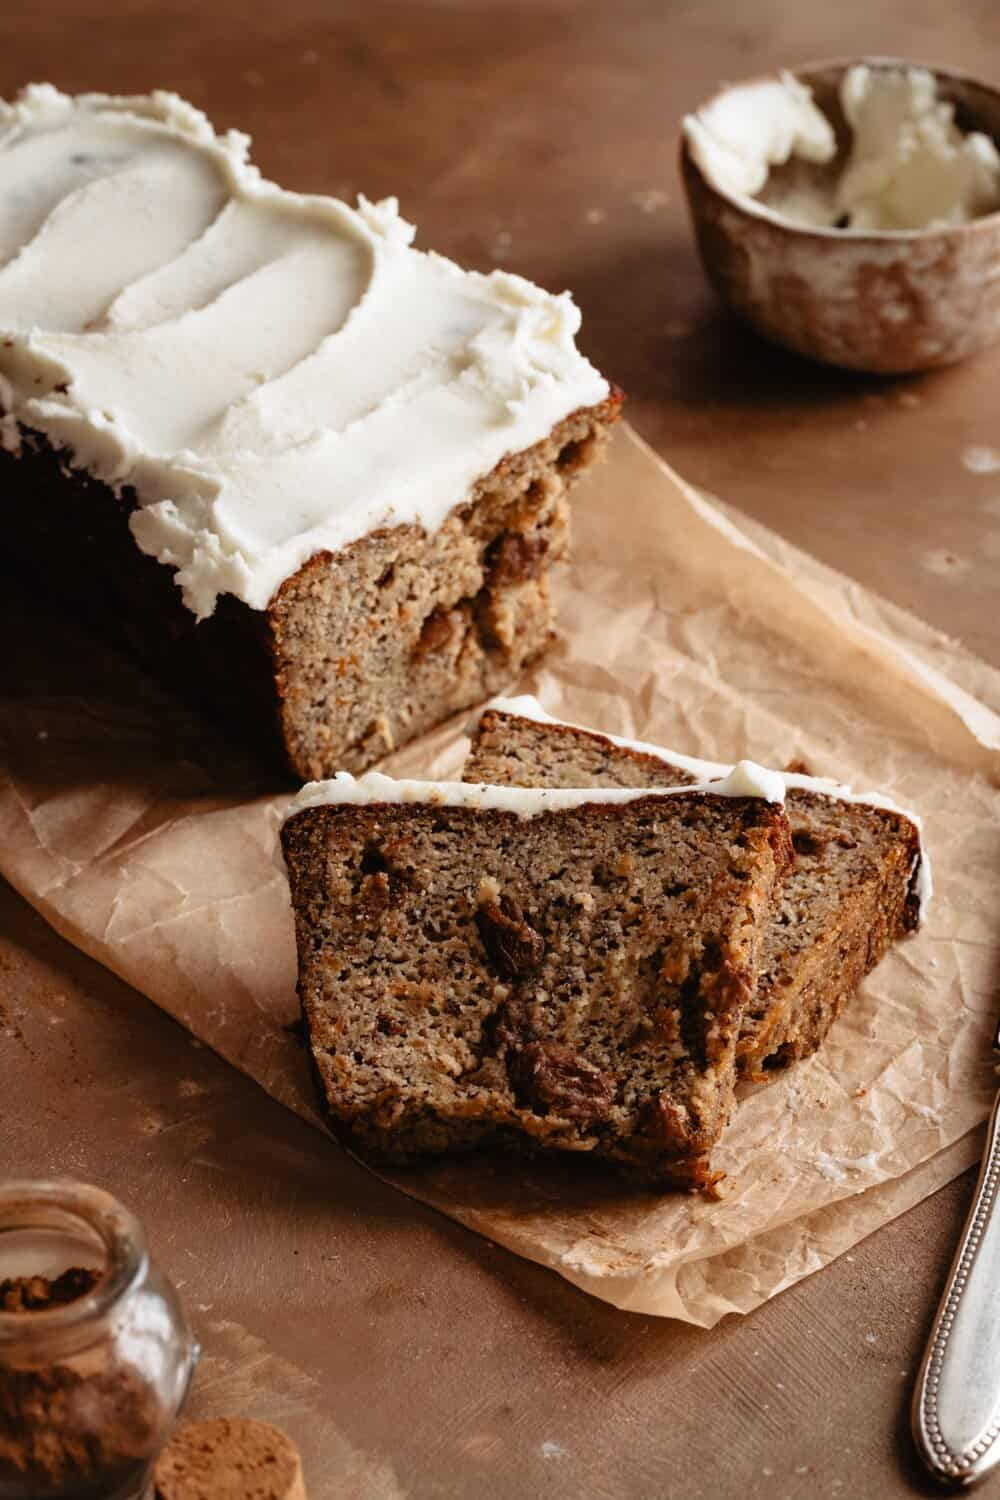 PALEO CARROT CAKE BANANA BREAD - INGREDIENTS3 eggs⠀⠀2 super ripe bananas⠀⠀2 1/4 cups almond flour ⠀⠀1/4 cup coconut sugar⠀⠀1/2 tsp baking soda⠀⠀1 tsp baking powder⠀⠀pinch salt⠀⠀1/4 cup raisins⠀⠀3/4 cup grated carrots (about 3)⠀⠀2 tb Primal Palate apple pie spice (or 1 tb cinnamon, 1/4 tsp nutmeg)⠀⠀1/4 cup coconut oil, melted⠀⠀3/4 container Simple Mills vanilla frosting⠀⠀